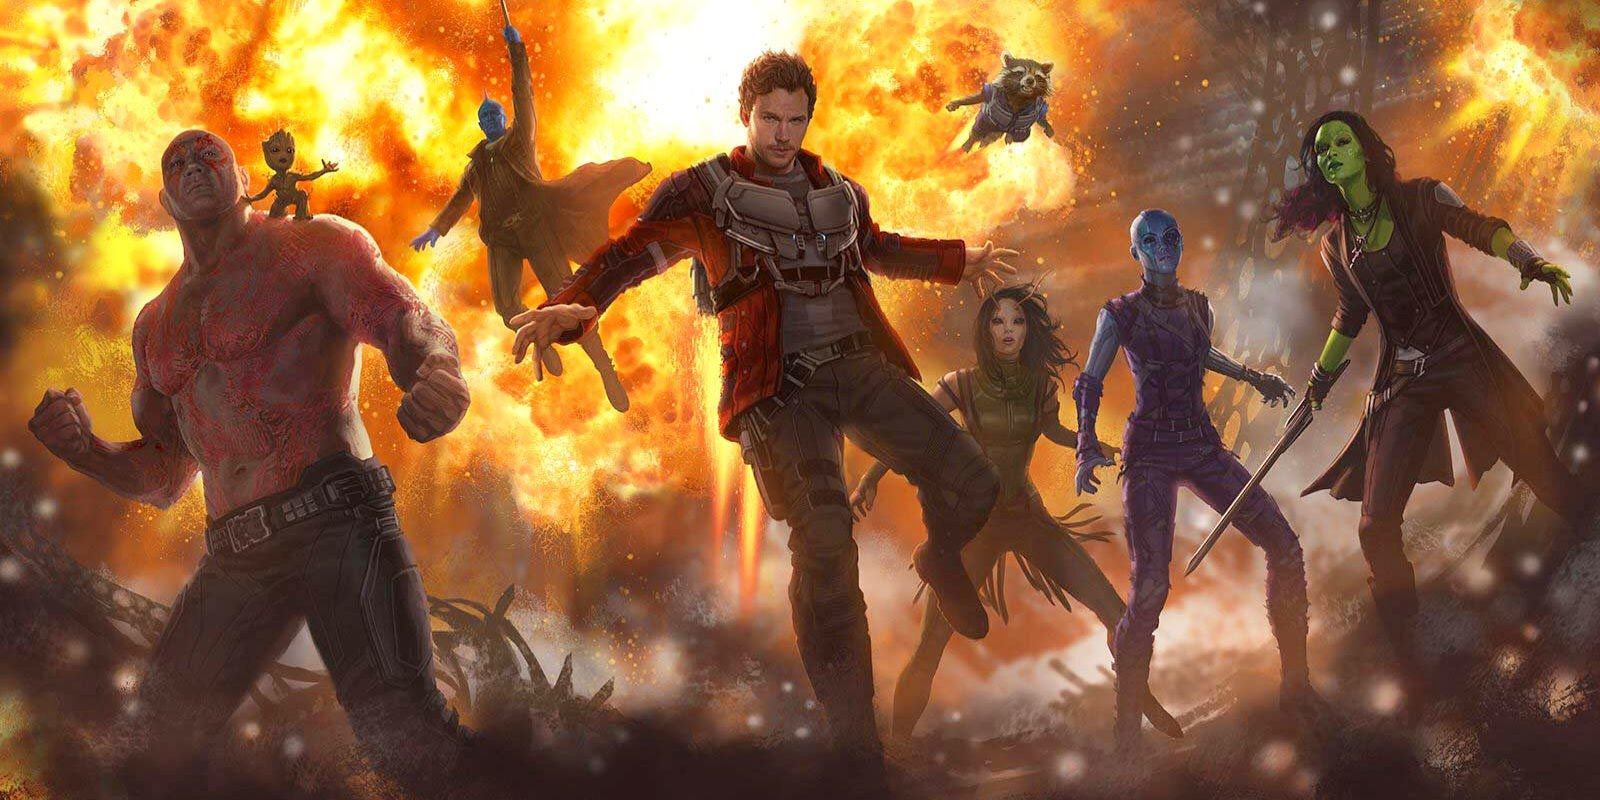 Marvel's Guardians of the Galaxy: Vol. 2